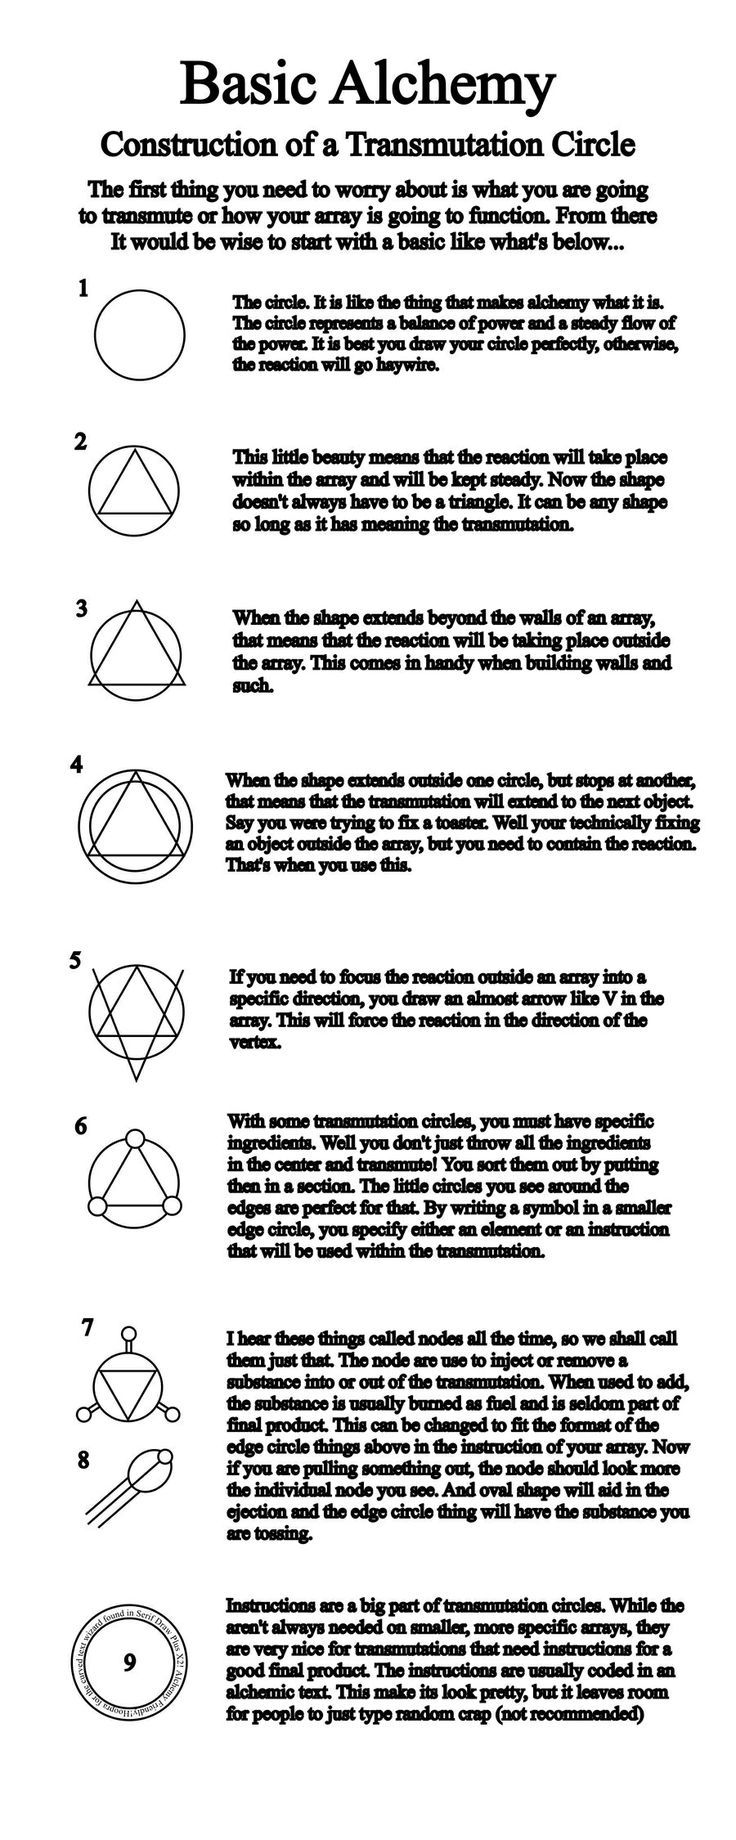 Basic alchemy ink pinterest alchemy symbols and runes patterns biocorpaavc Images